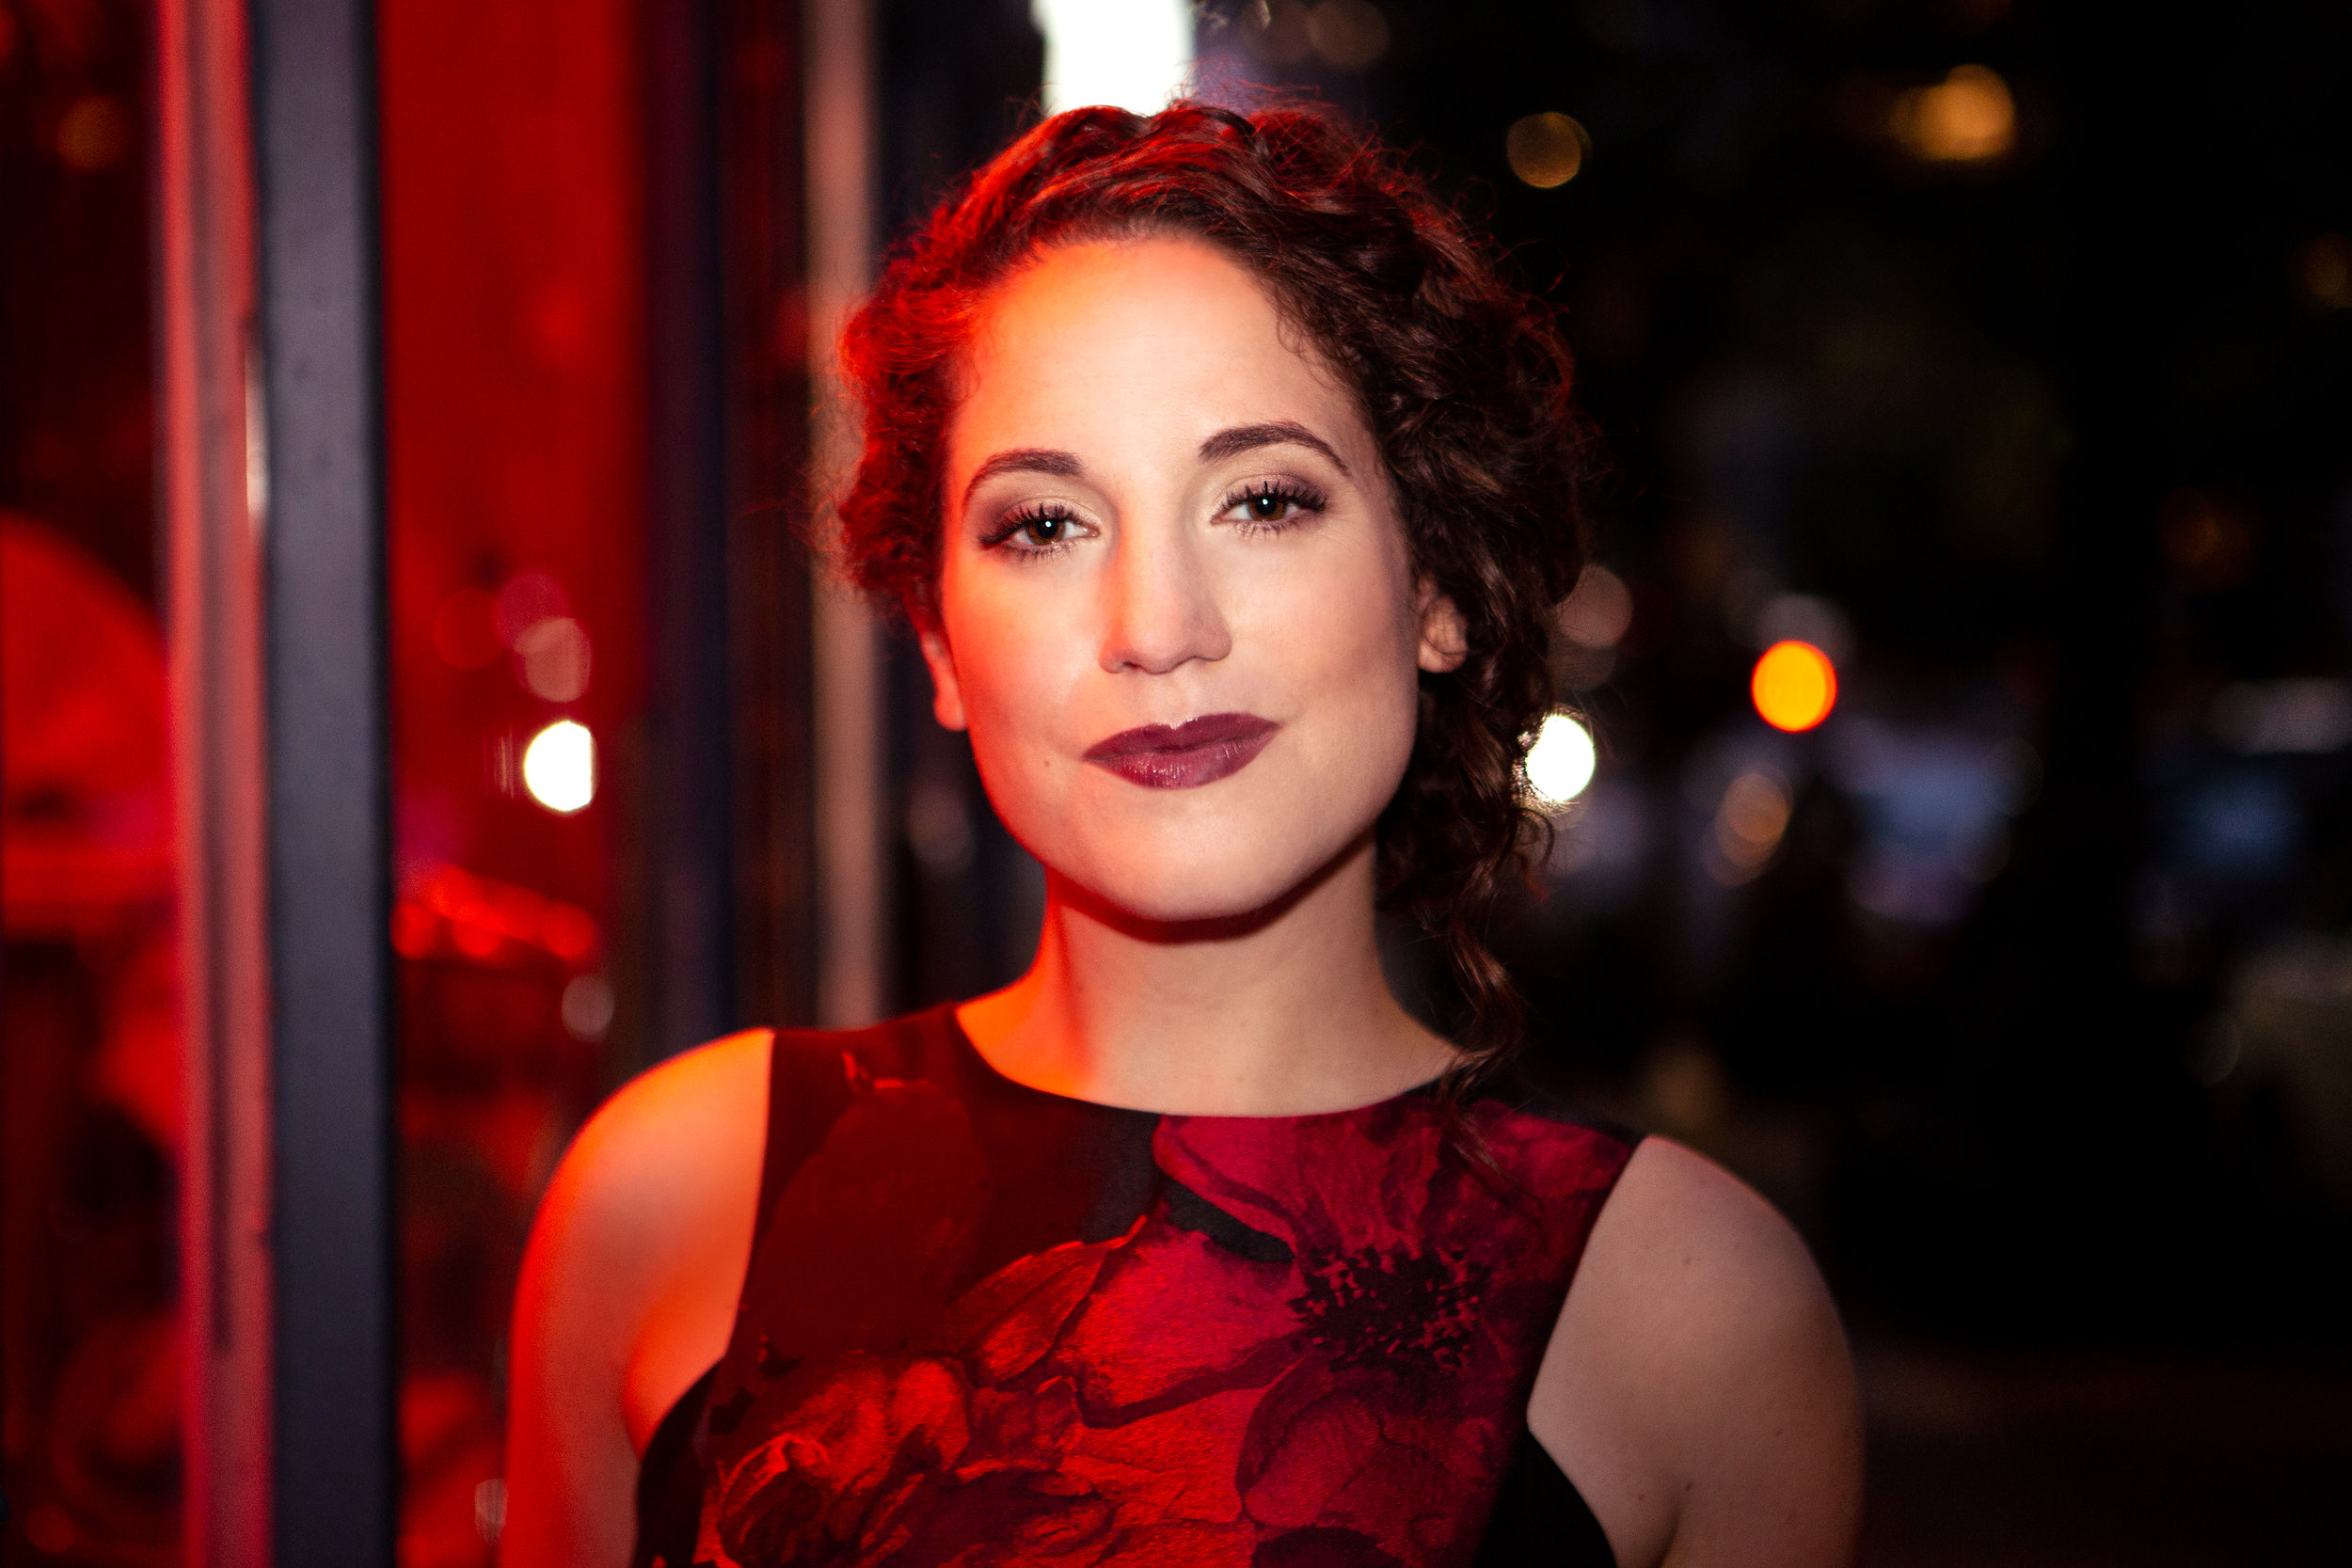 Overview - Monica has made several notable house debuts including San Francisco Opera, Michigan Opera Theatre, Oper Köln, and Opera Theatre of Saint Louis. Next season she joins the roster of the Metropolitan Opera in their production of Le Nozze di Figaro.